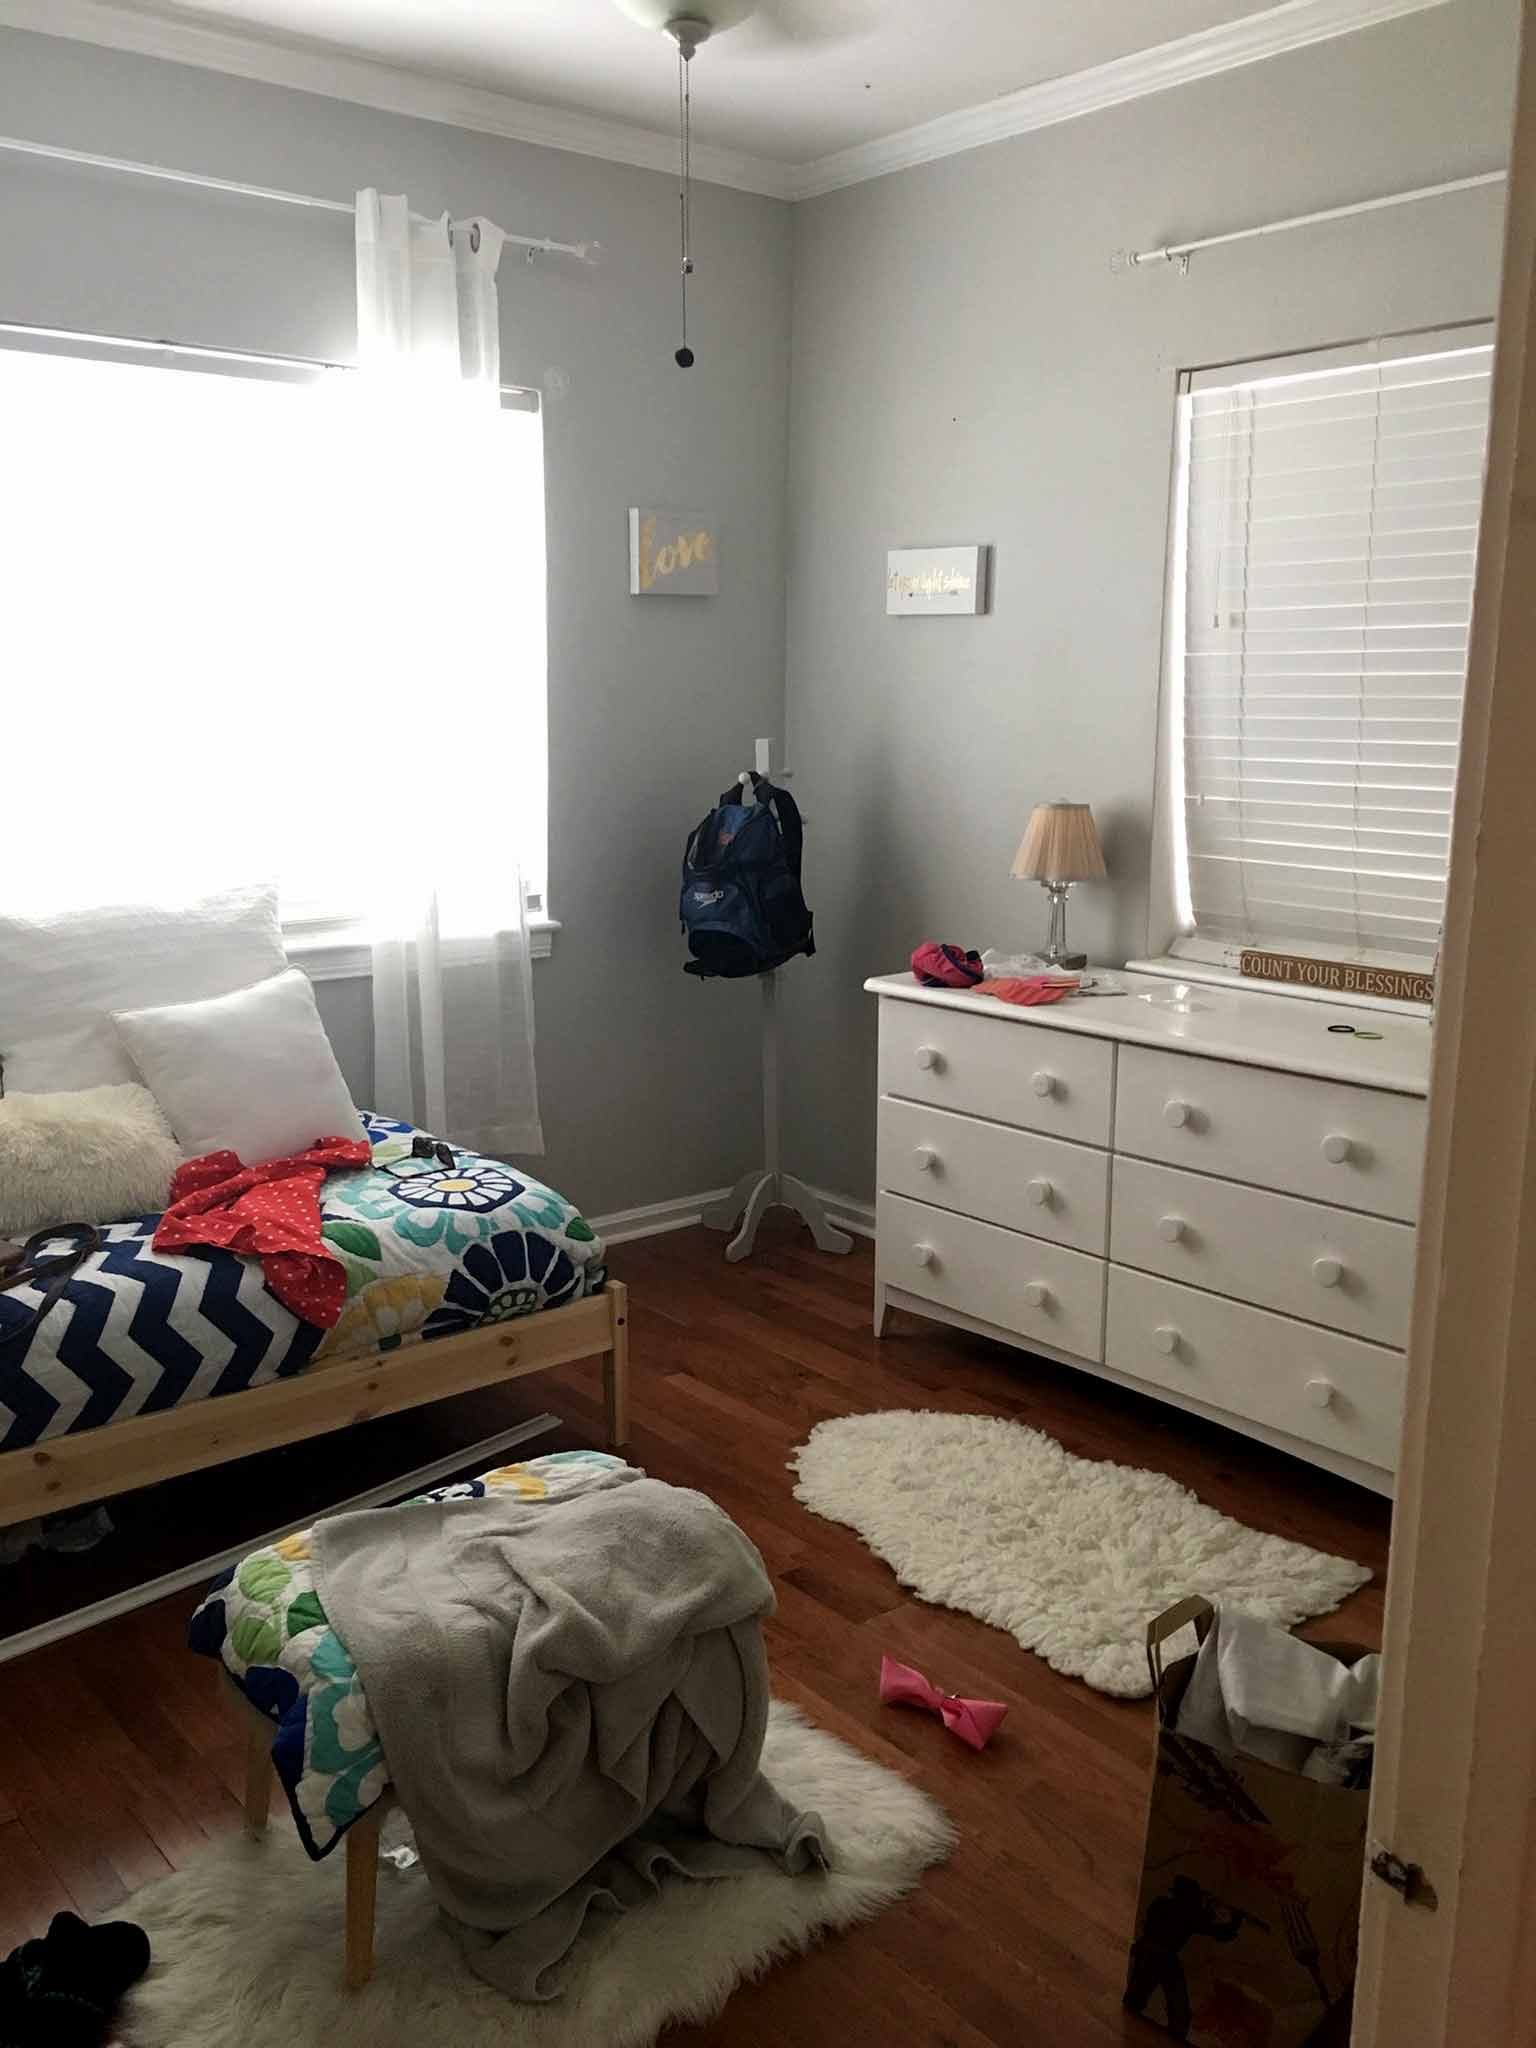 by bedroom underneath s room ikea into and just sl blue time a house bedrooms minimalist or items with turn children this that white of study the kt walls favorite sleeping beside bed ideas your modern for furniture tween spending